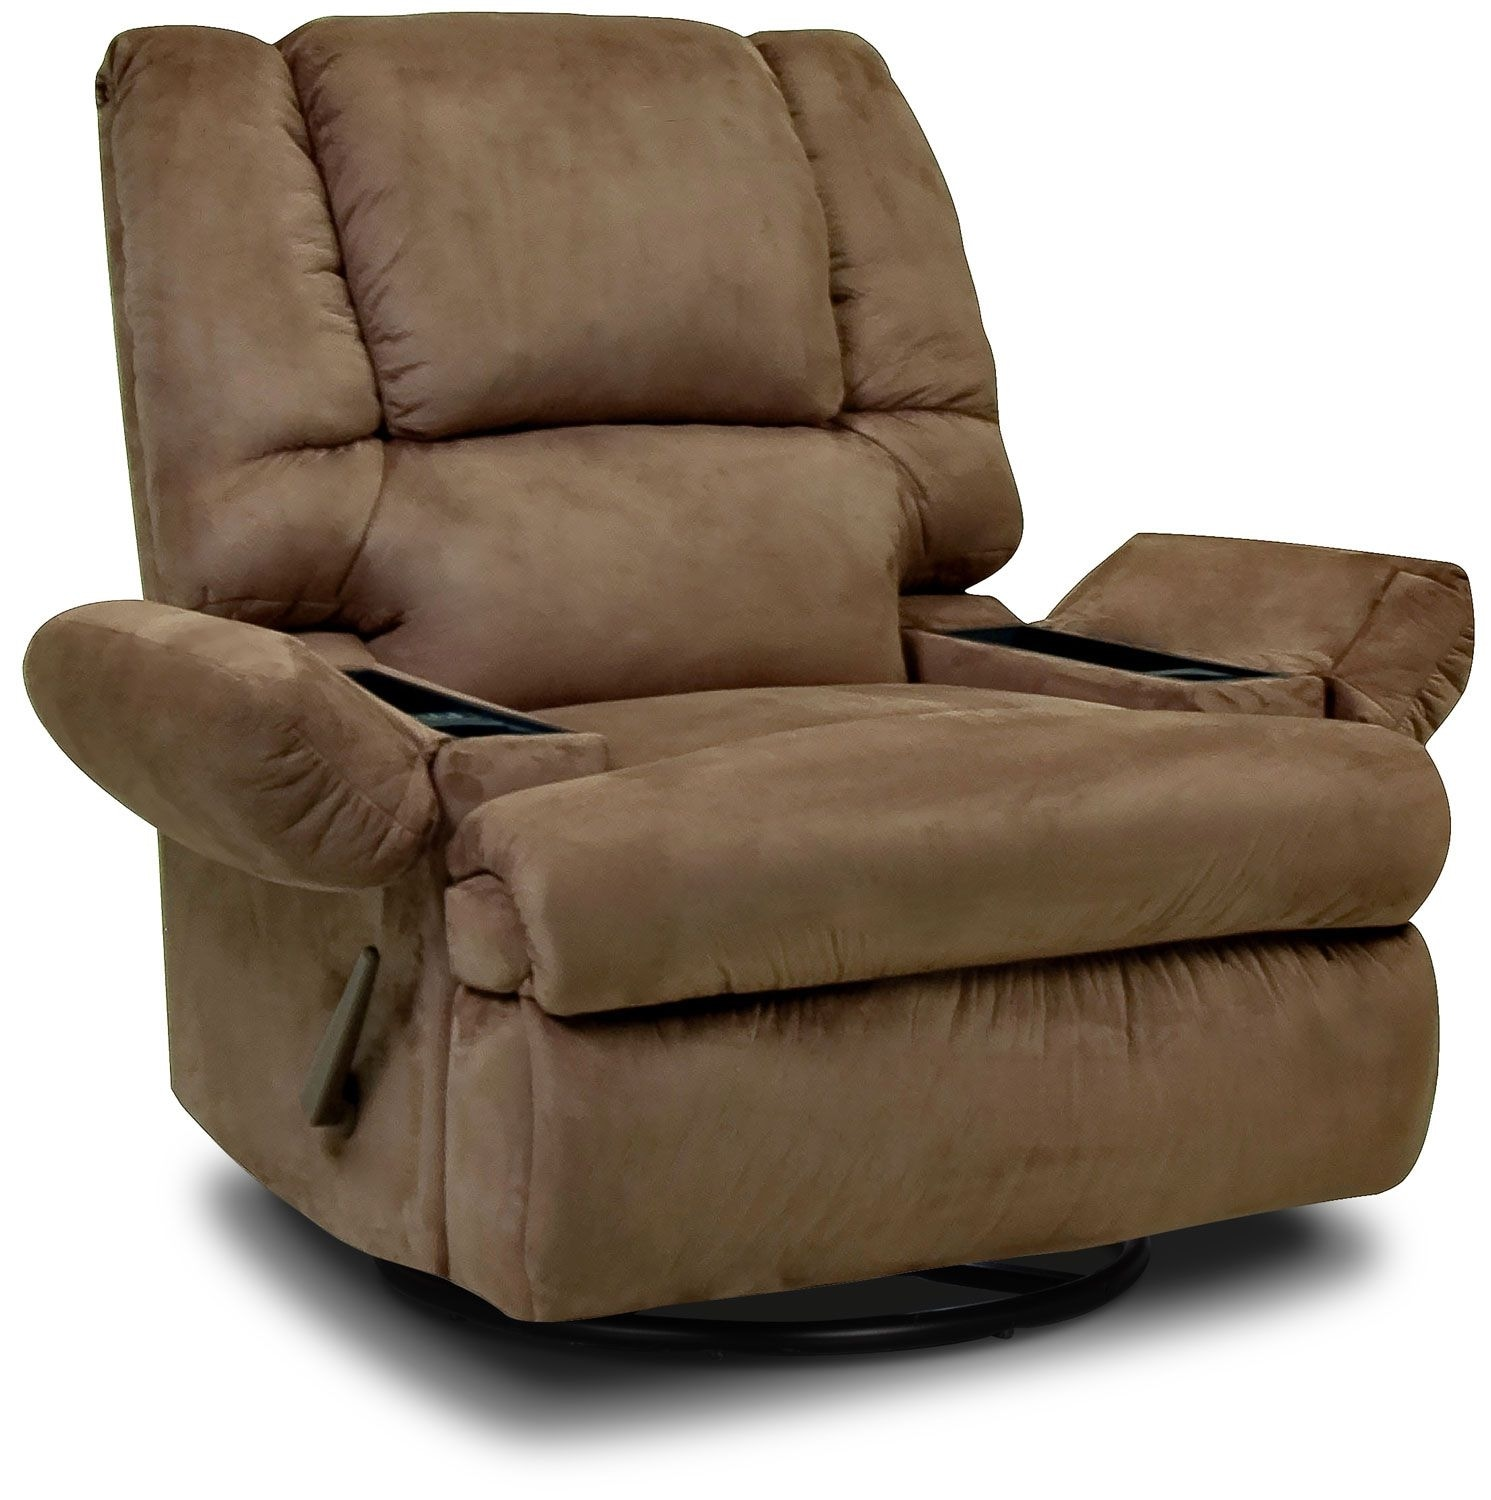 Living Room Furniture - Designed2B Recliner 5598 Padded Suede Swivel Rocker with Storage Arms - Mocha